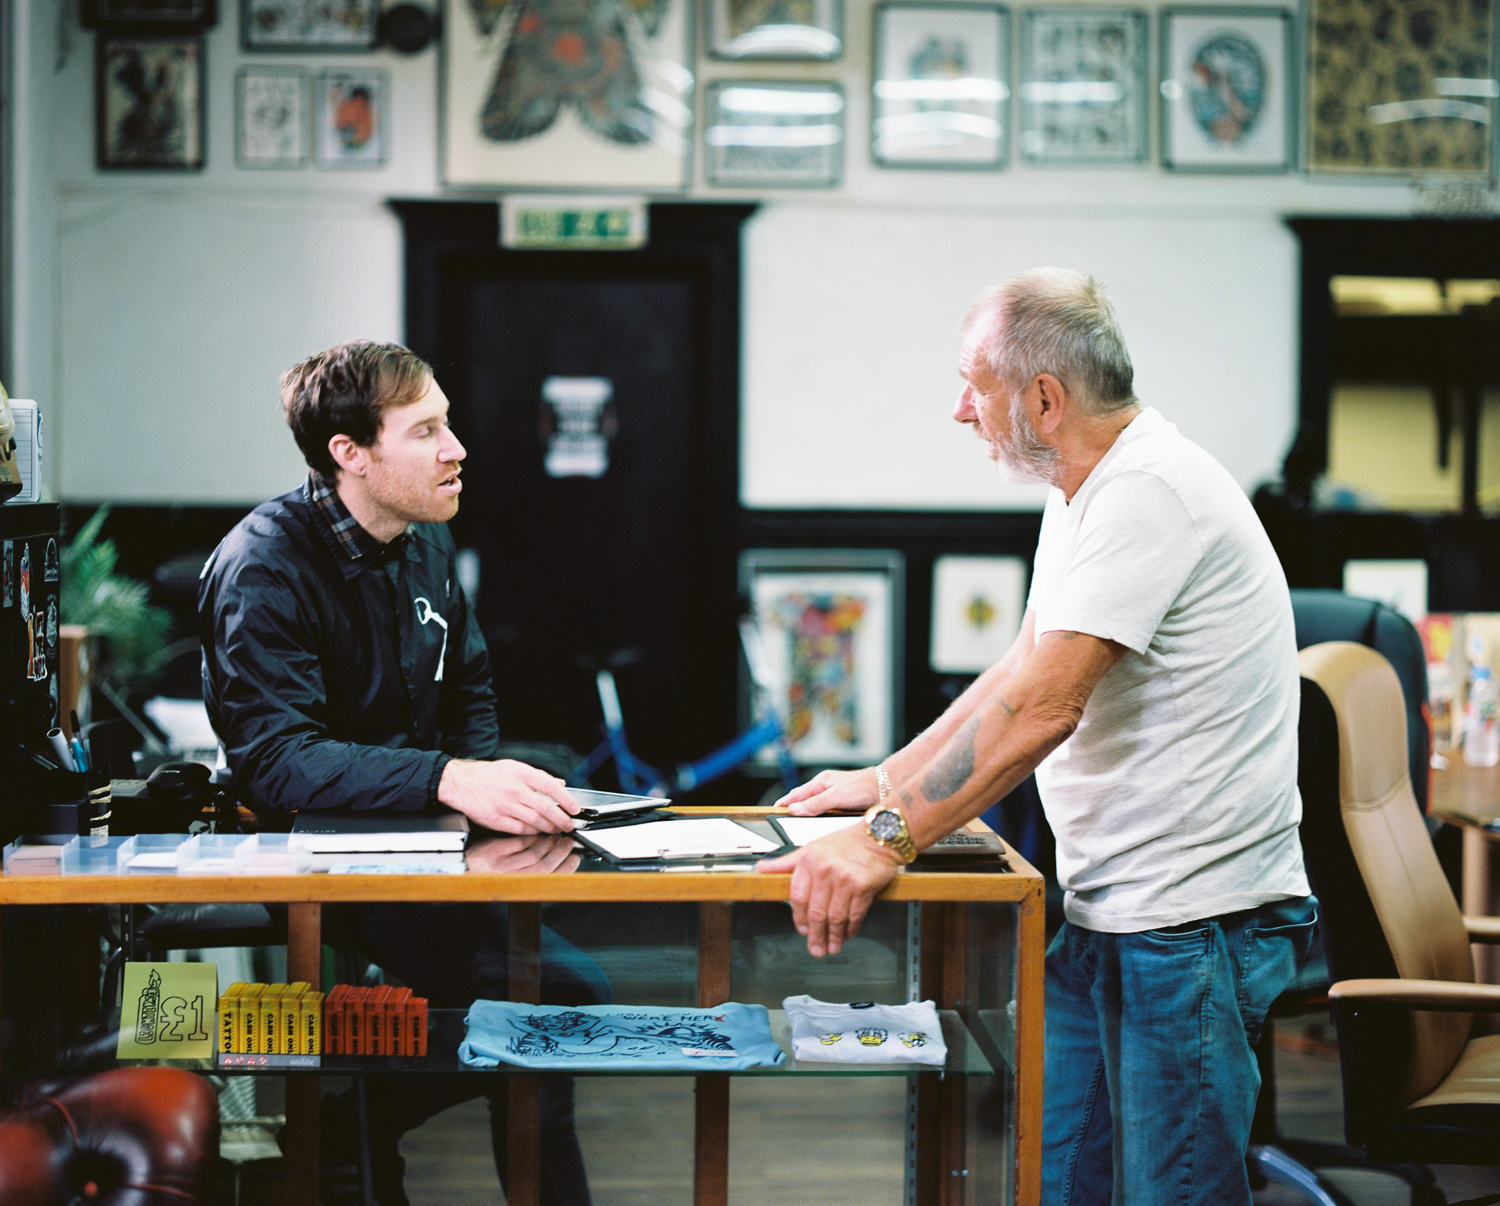 Dad & Baker discussing tattoo options